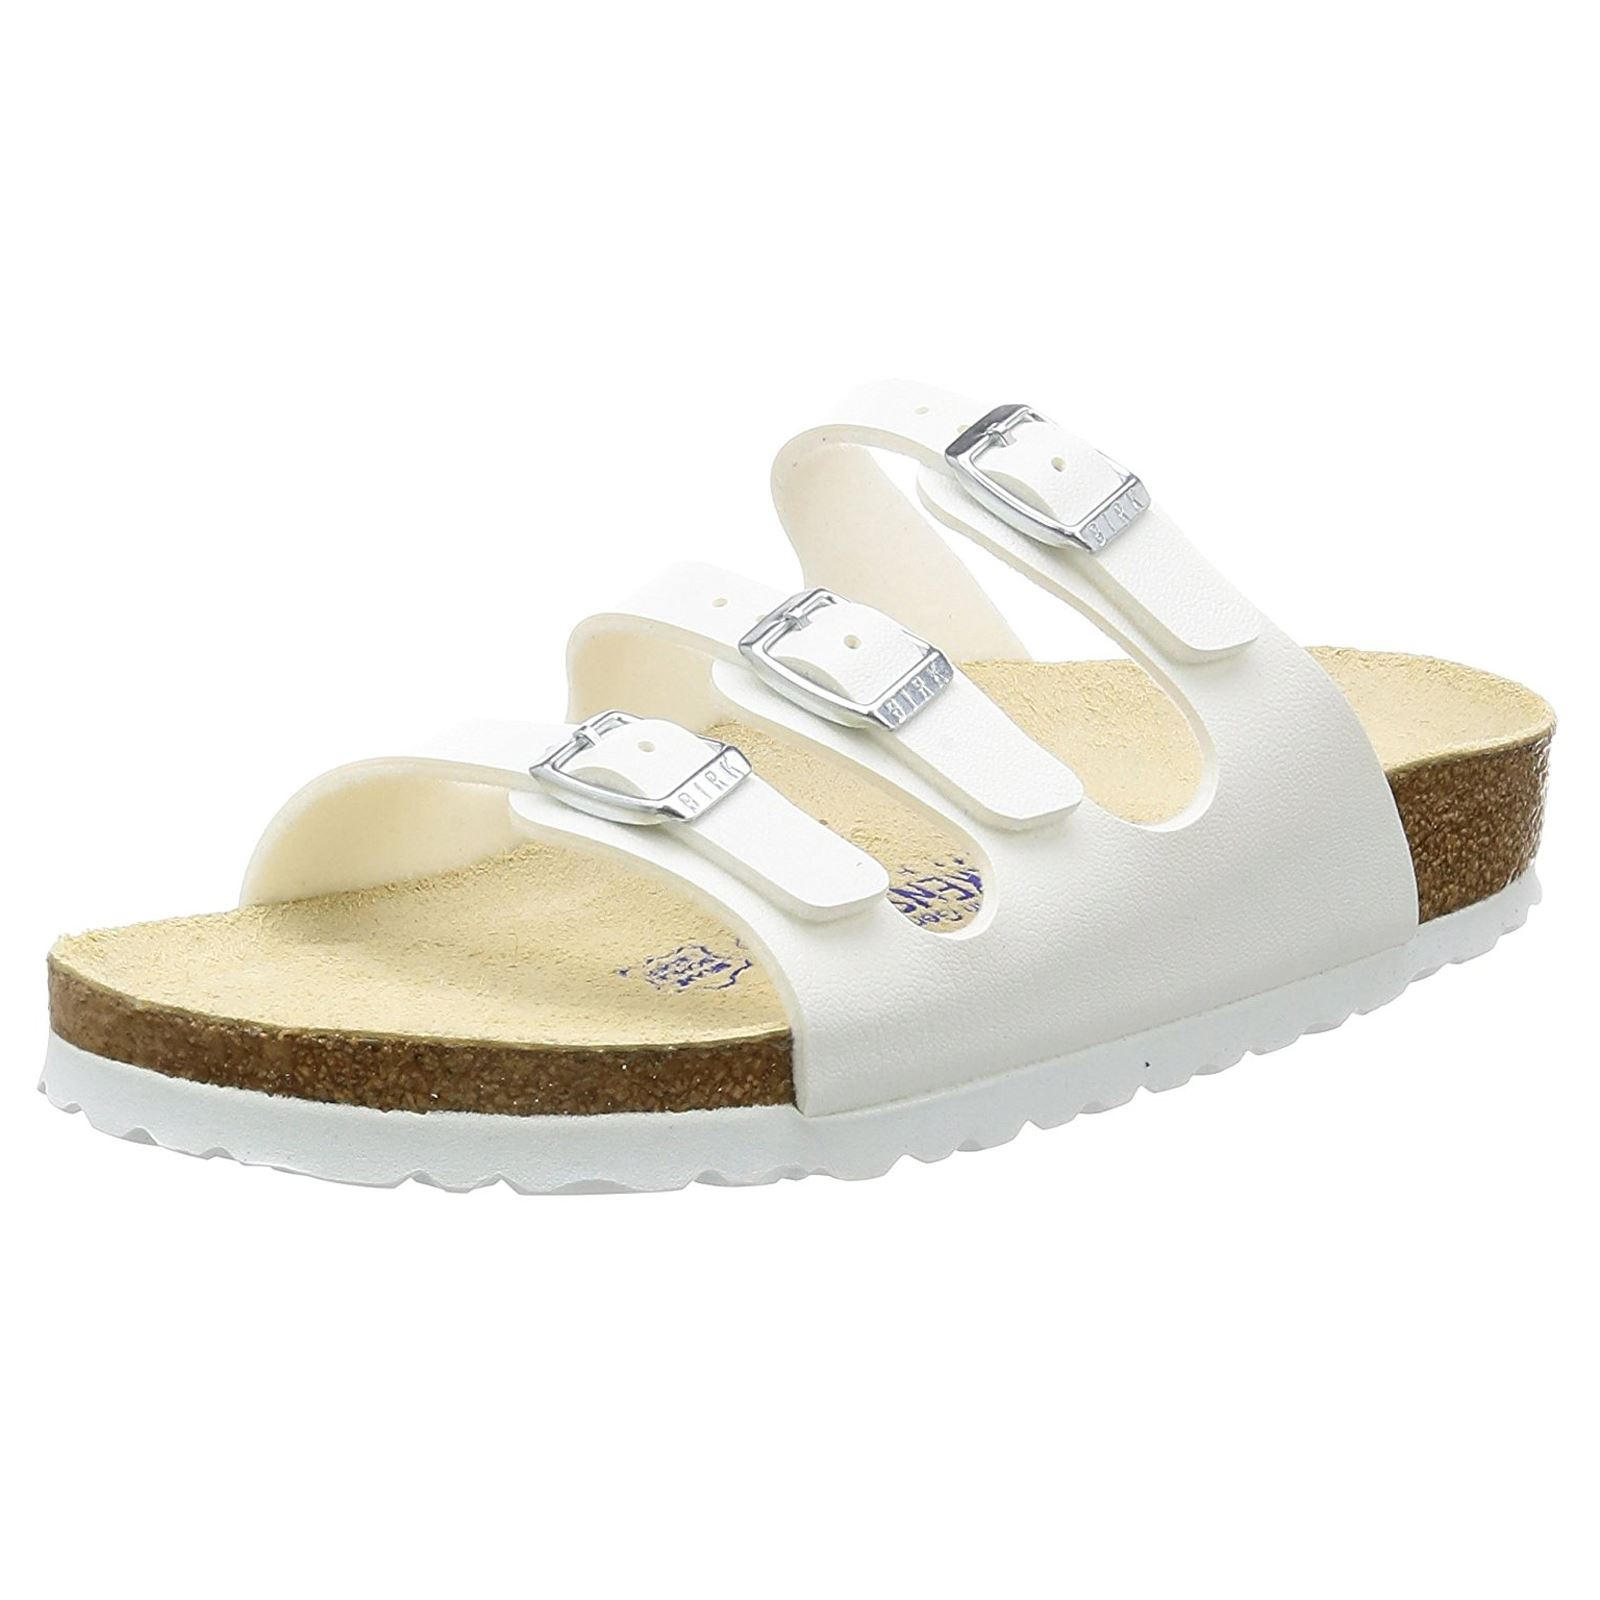 67a58e9dd1c Birkenstock Florida White Birko-Flor Womens Regular Fit Triple Strap Sandals